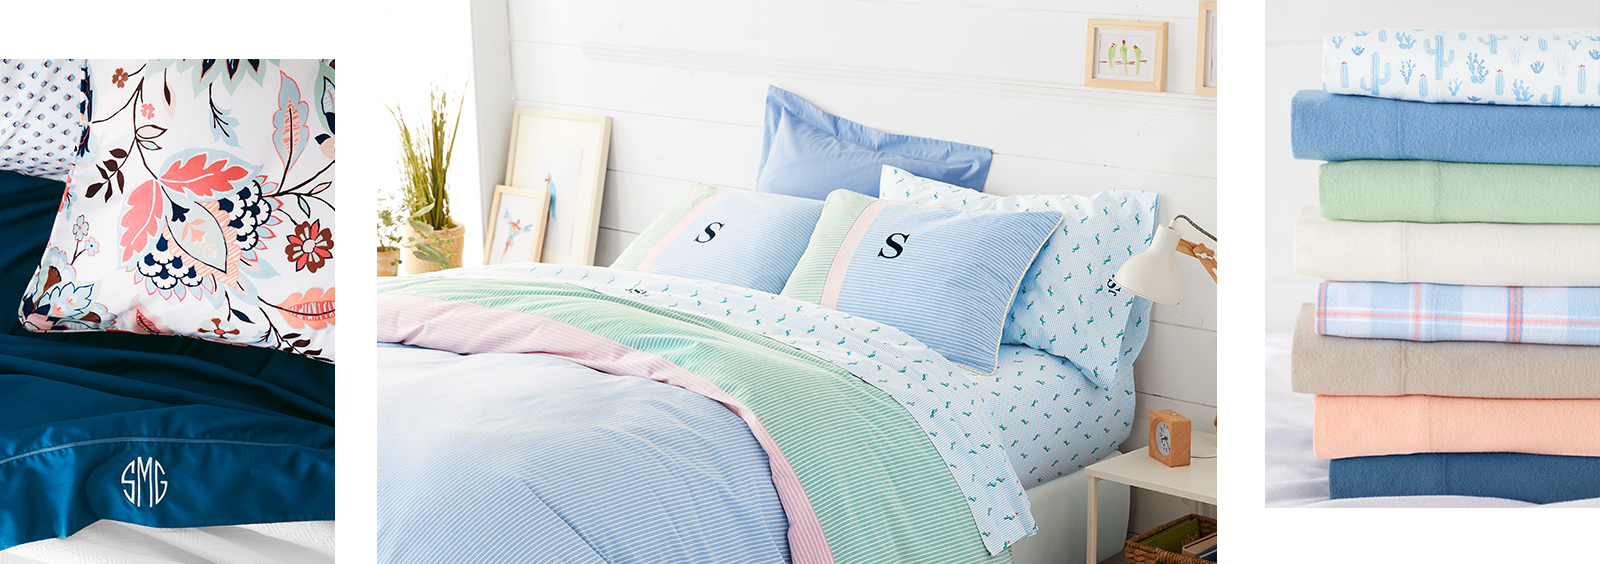 How to Pick Out a New Bed Set Design